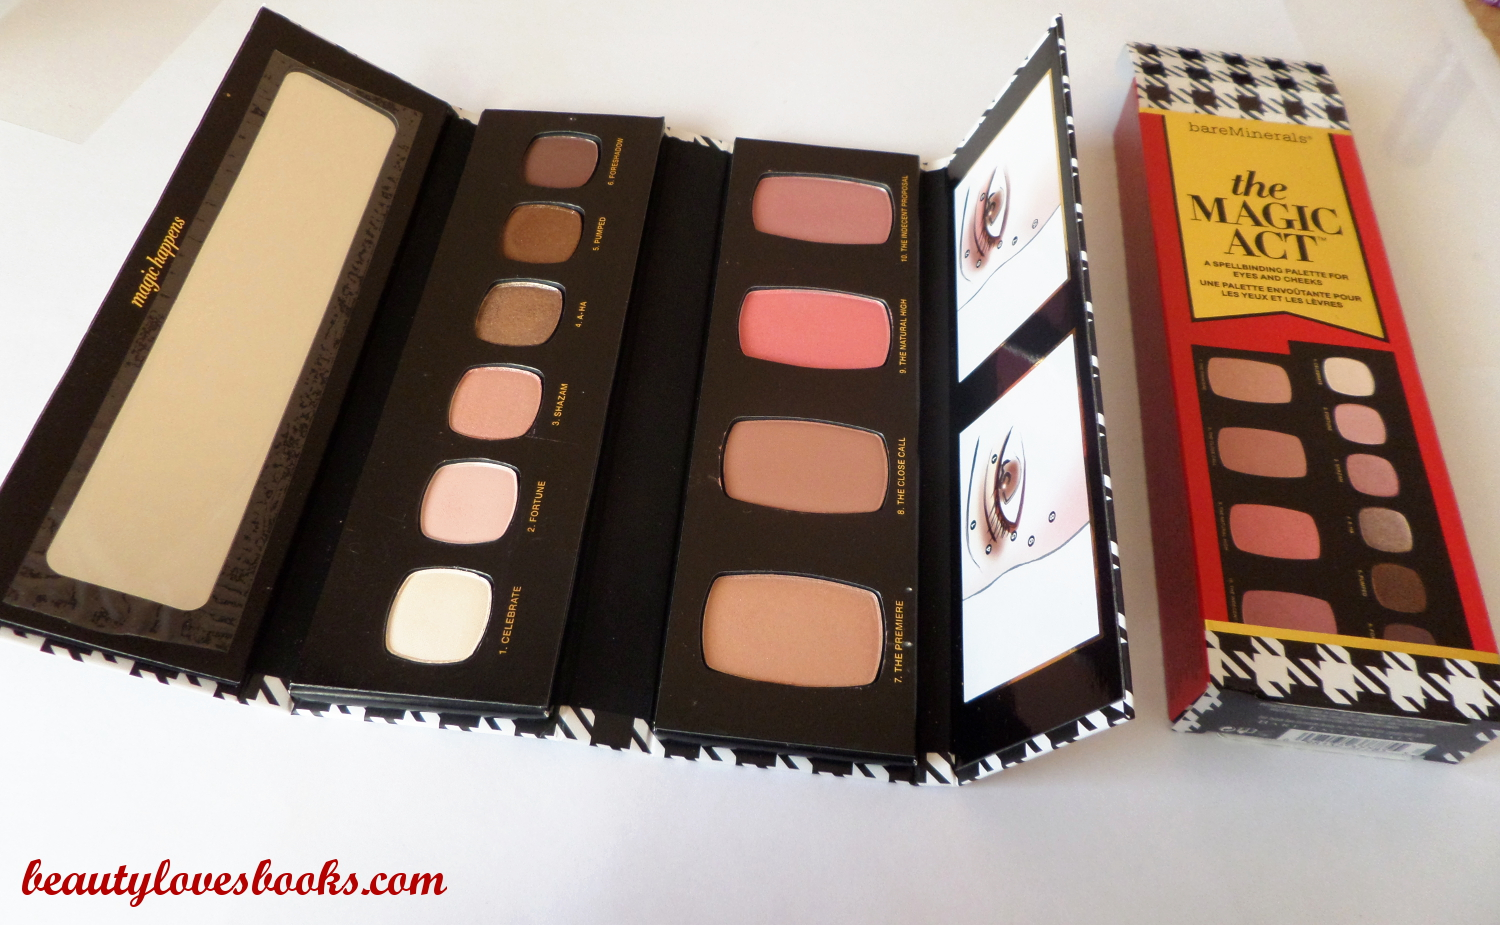 Bare minerals the magic act palette Christmas 2014